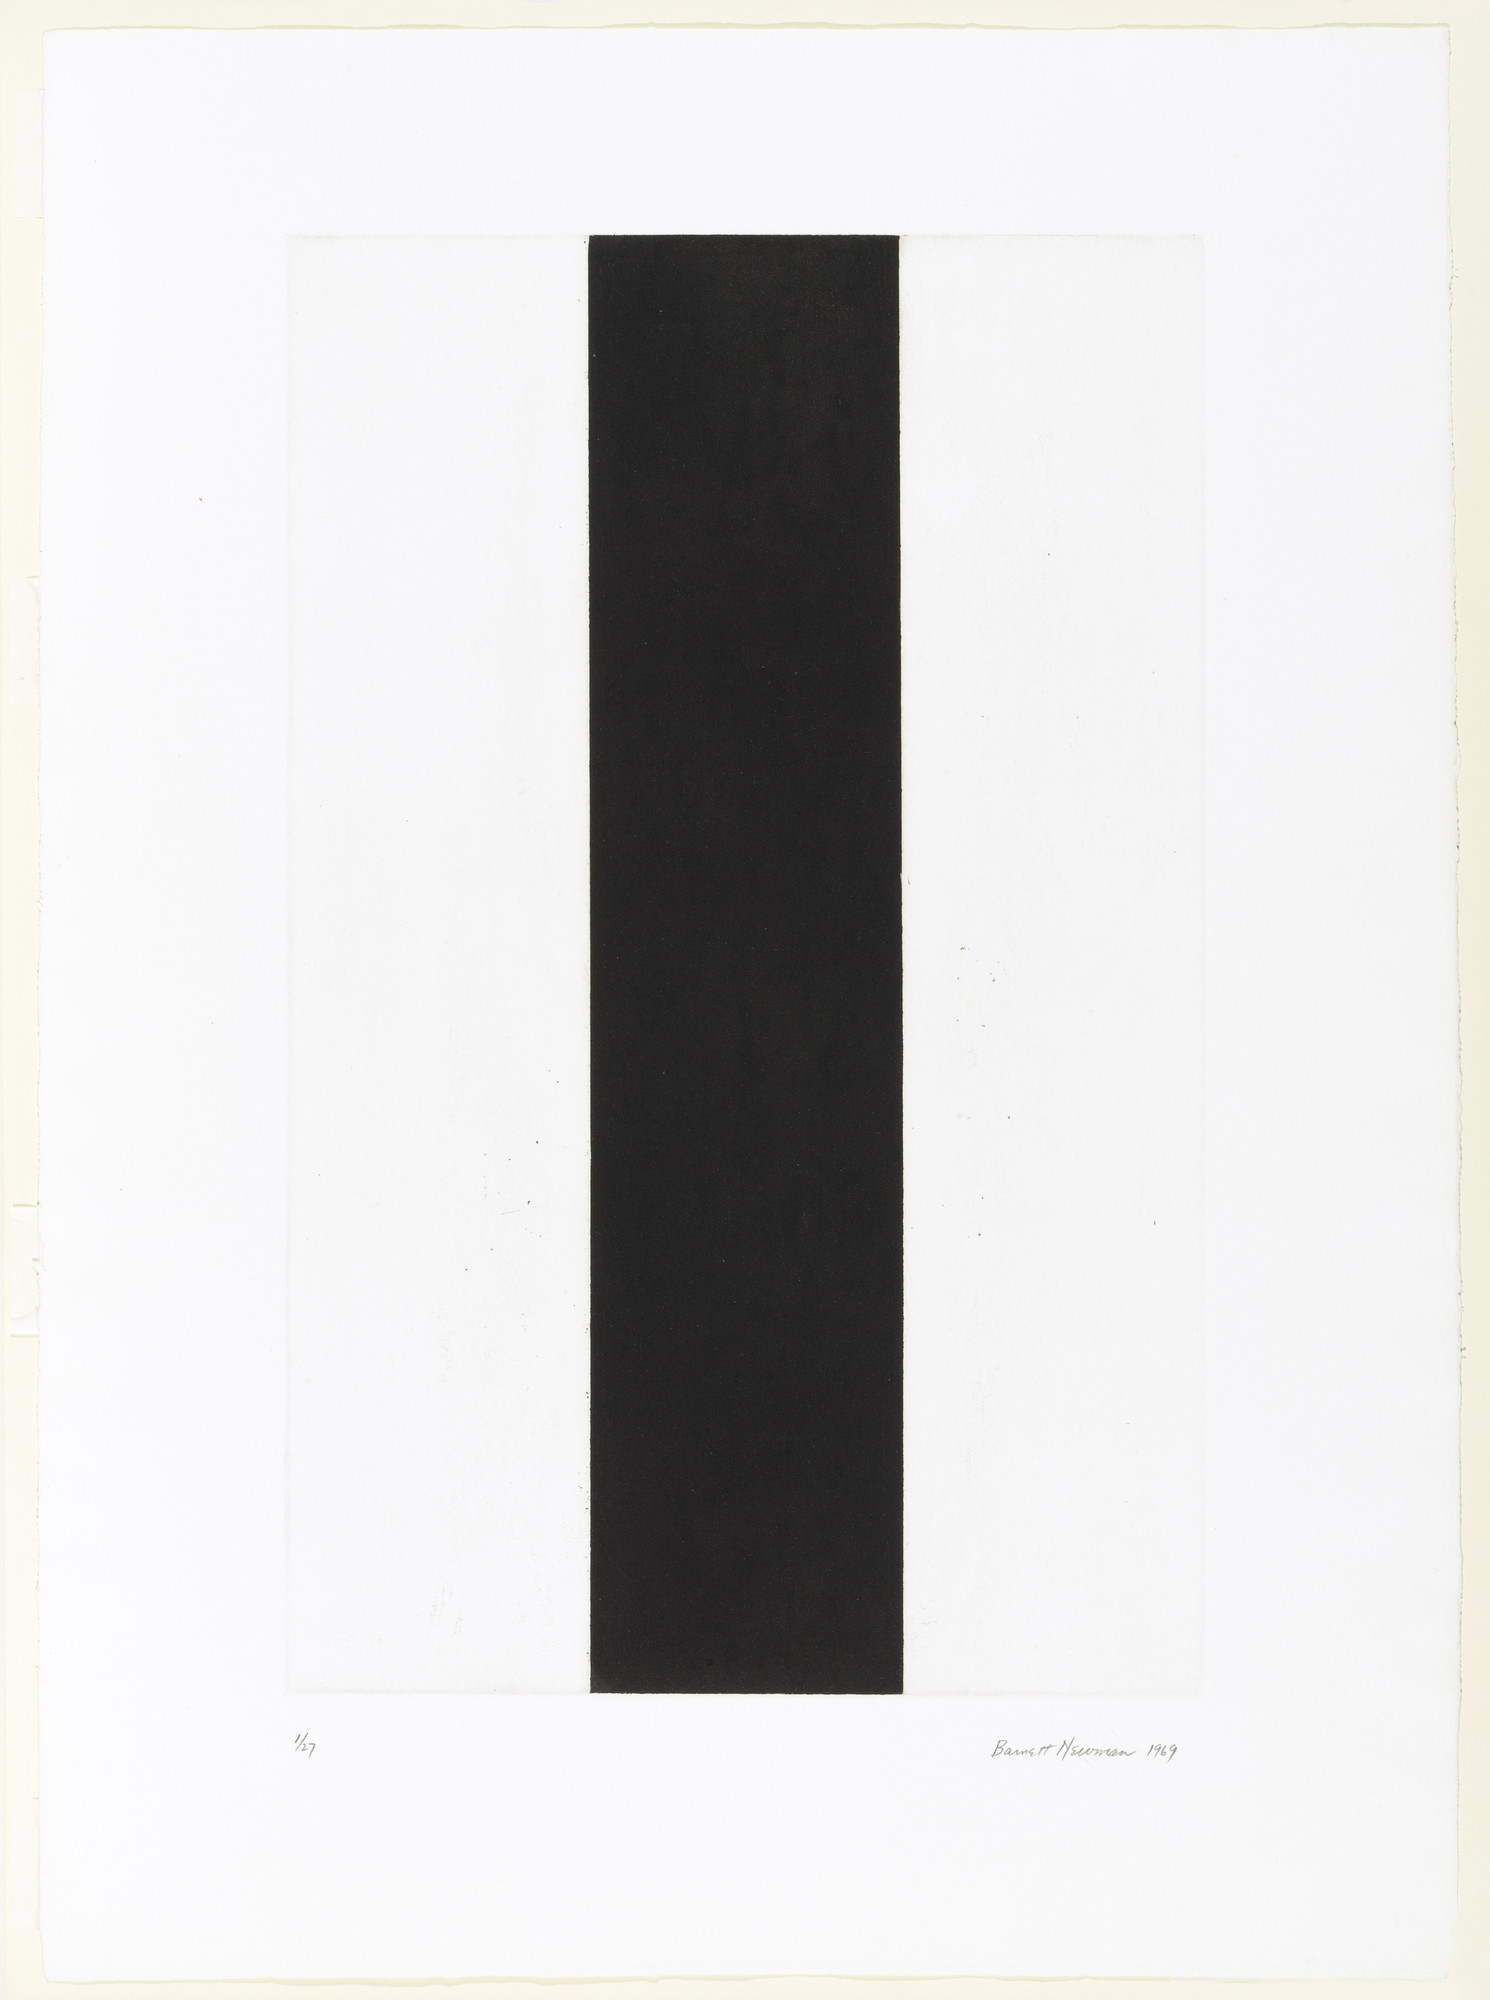 Barnett Newman. Untitled Etching #2. 1969